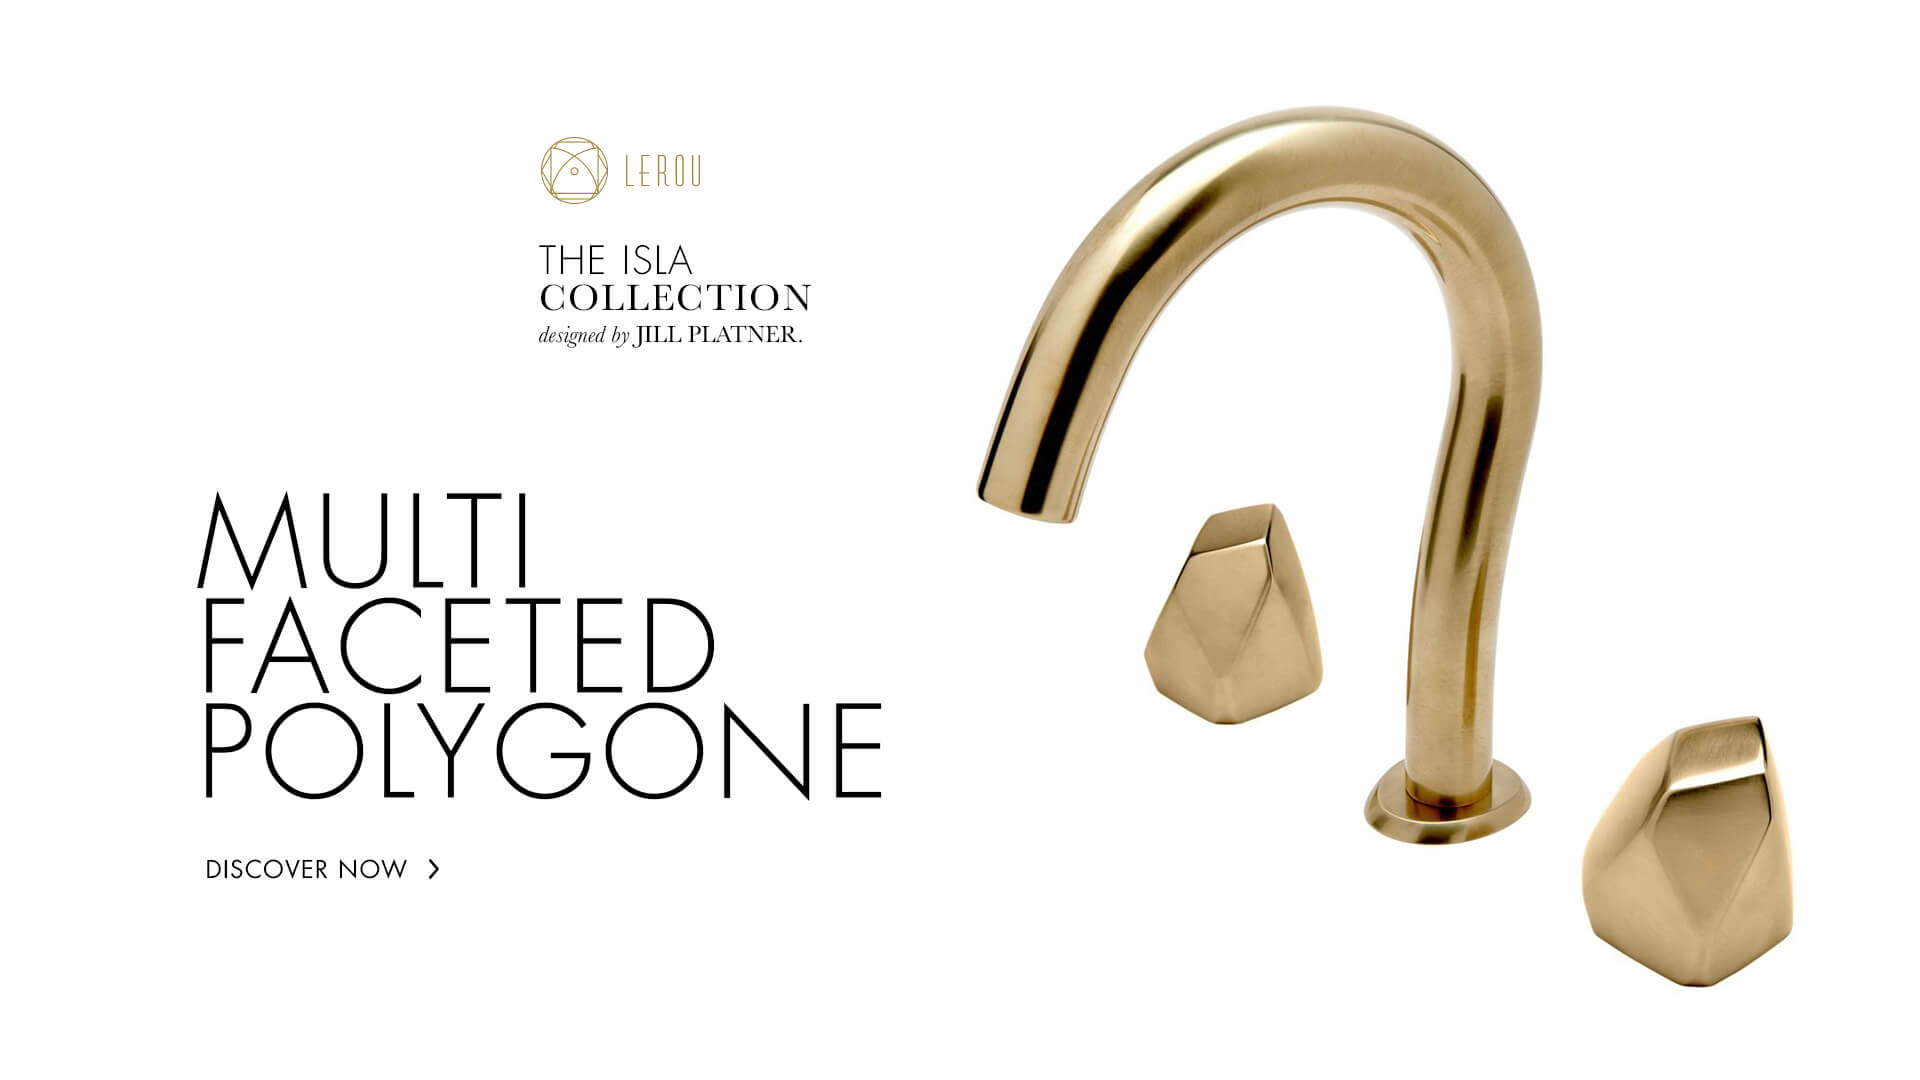 Design Your Tap As You Like: The Isla Collection by Jill Platner. Ontwerp uw kraan zoals u wenst: de Isla collectie ontworpen door Jill Platner.